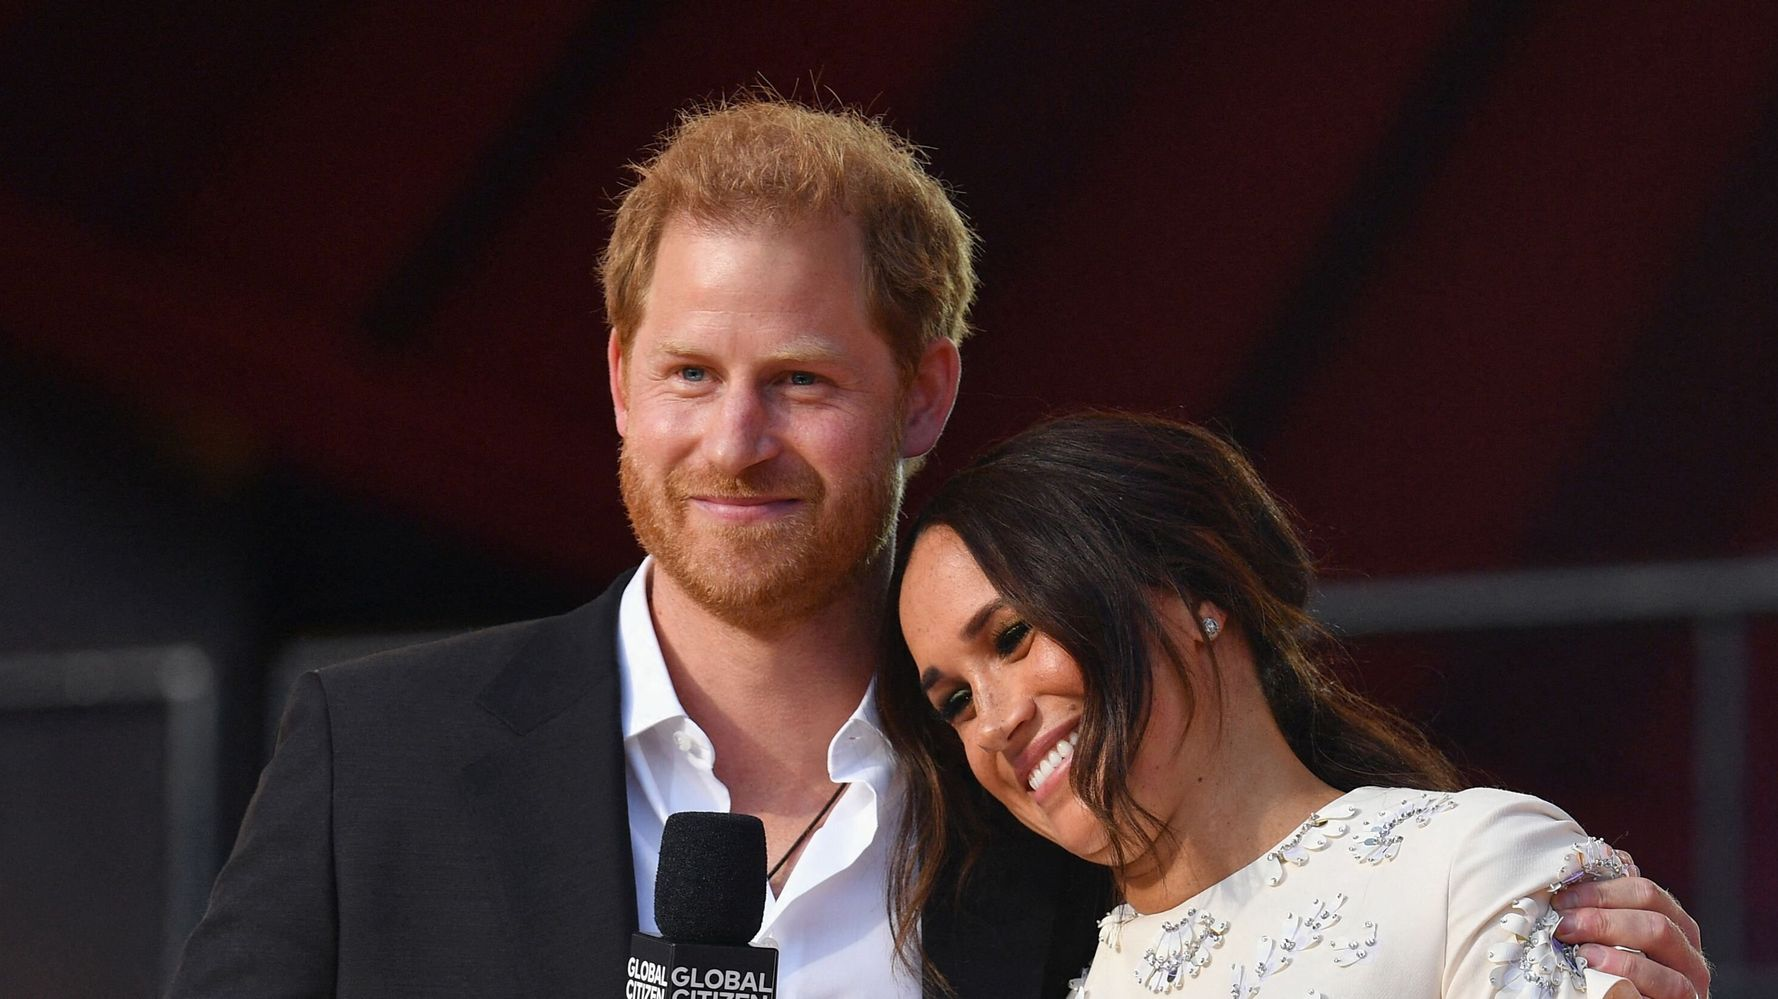 All The Photos You Need To See From Meghan And Harry's NYC Trip